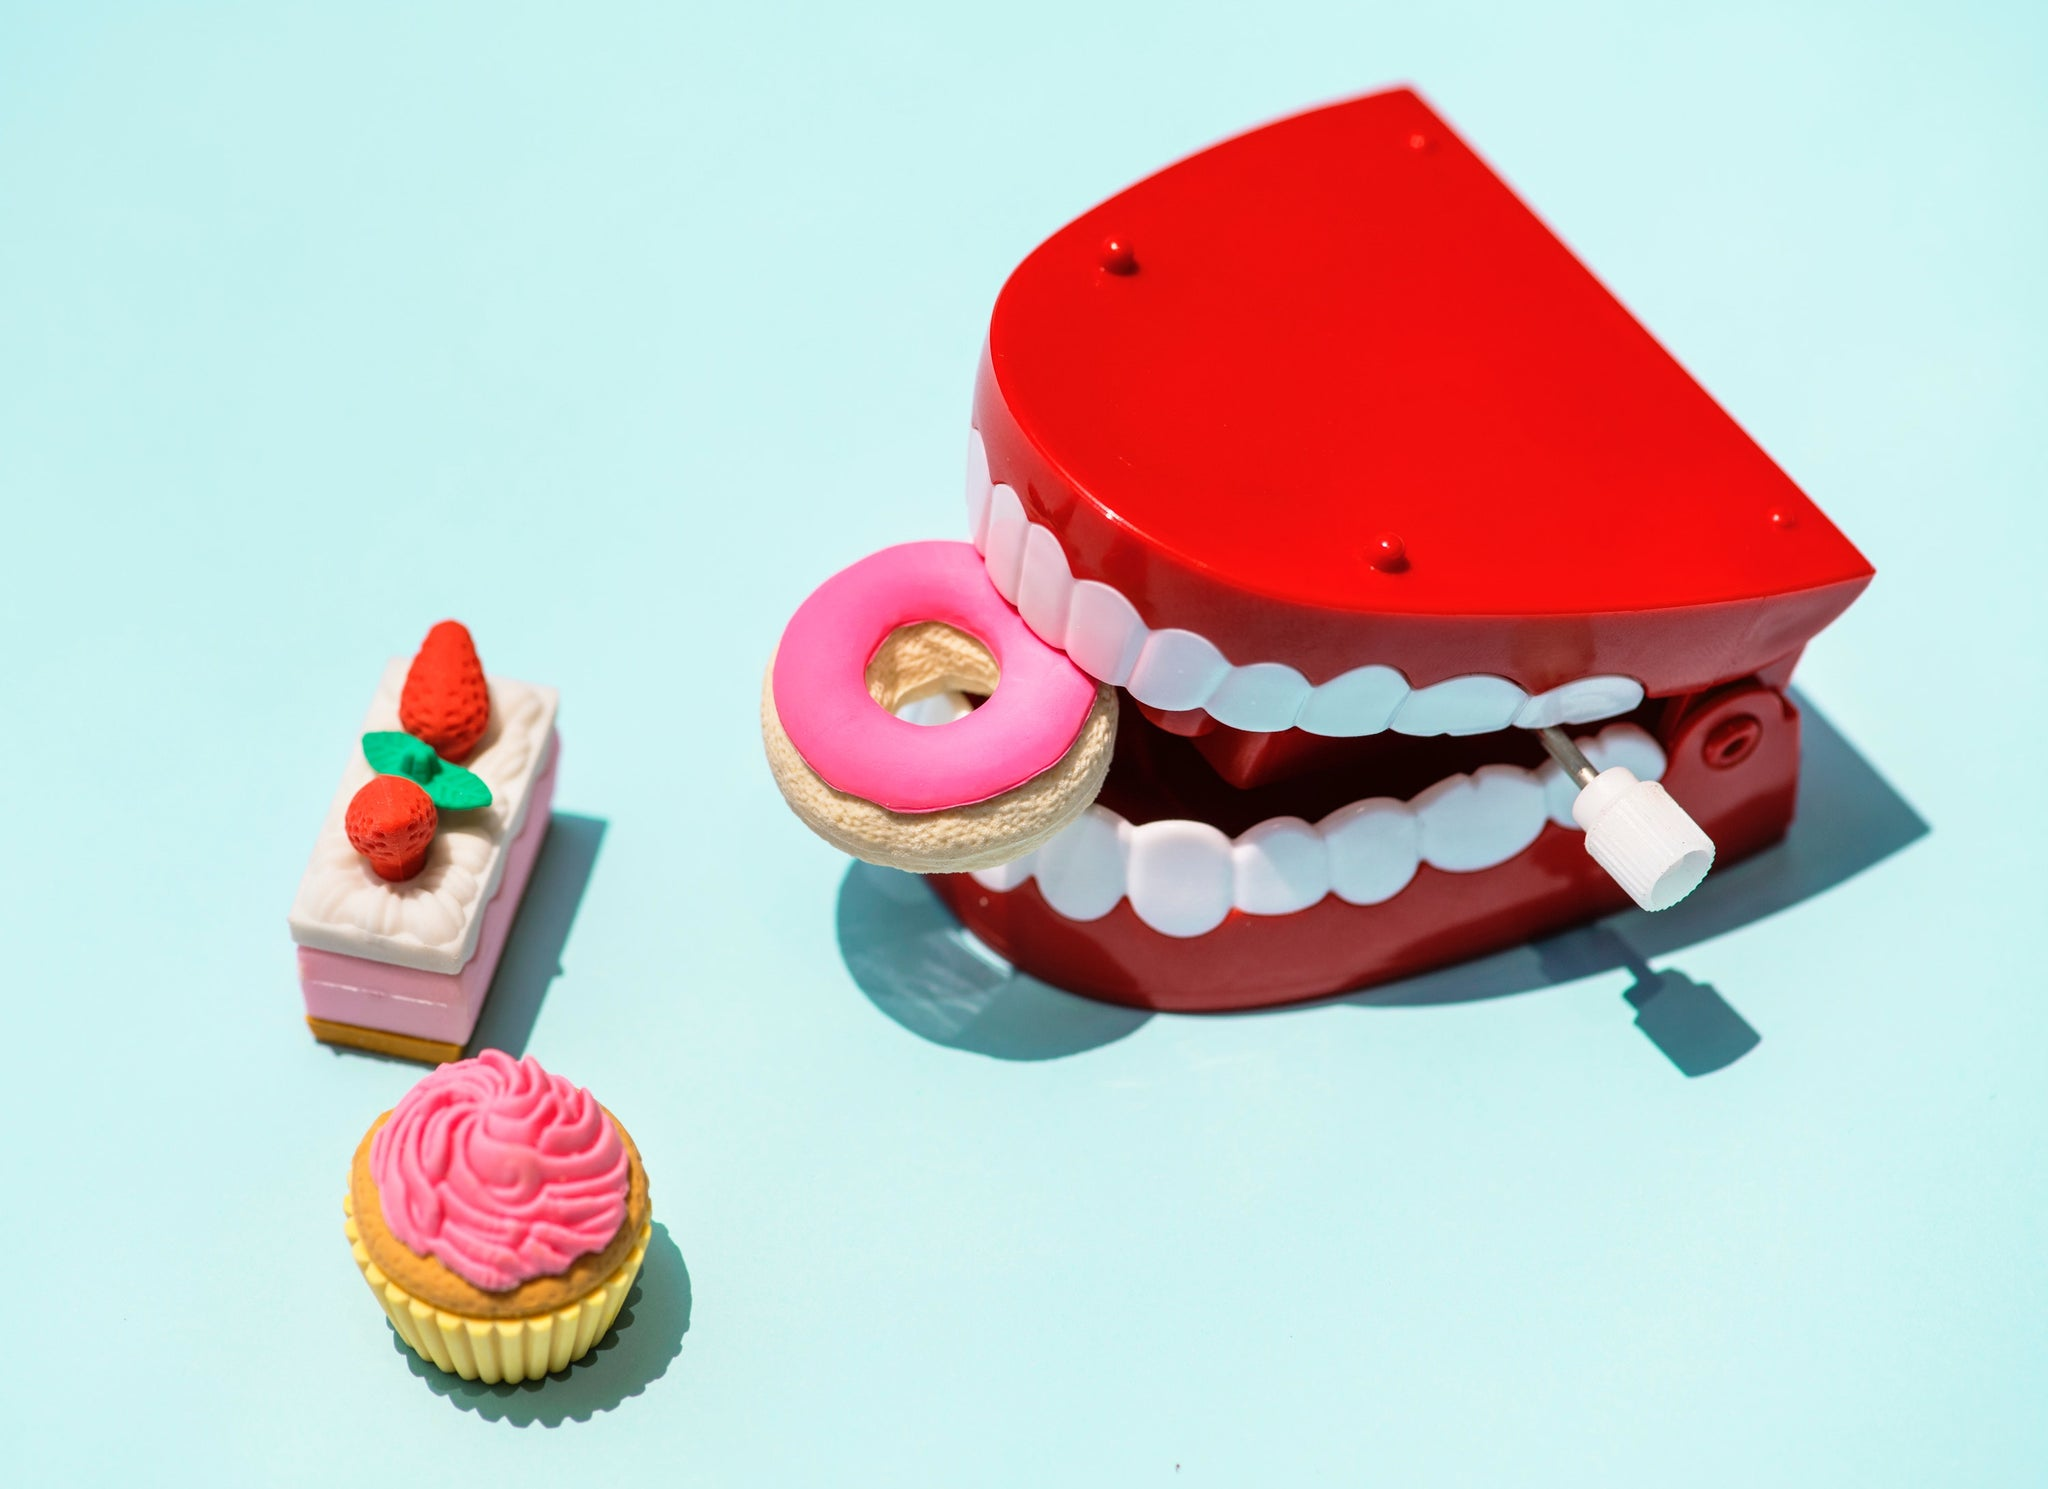 Toy dentures biting into toy desserts, for AutoBrush